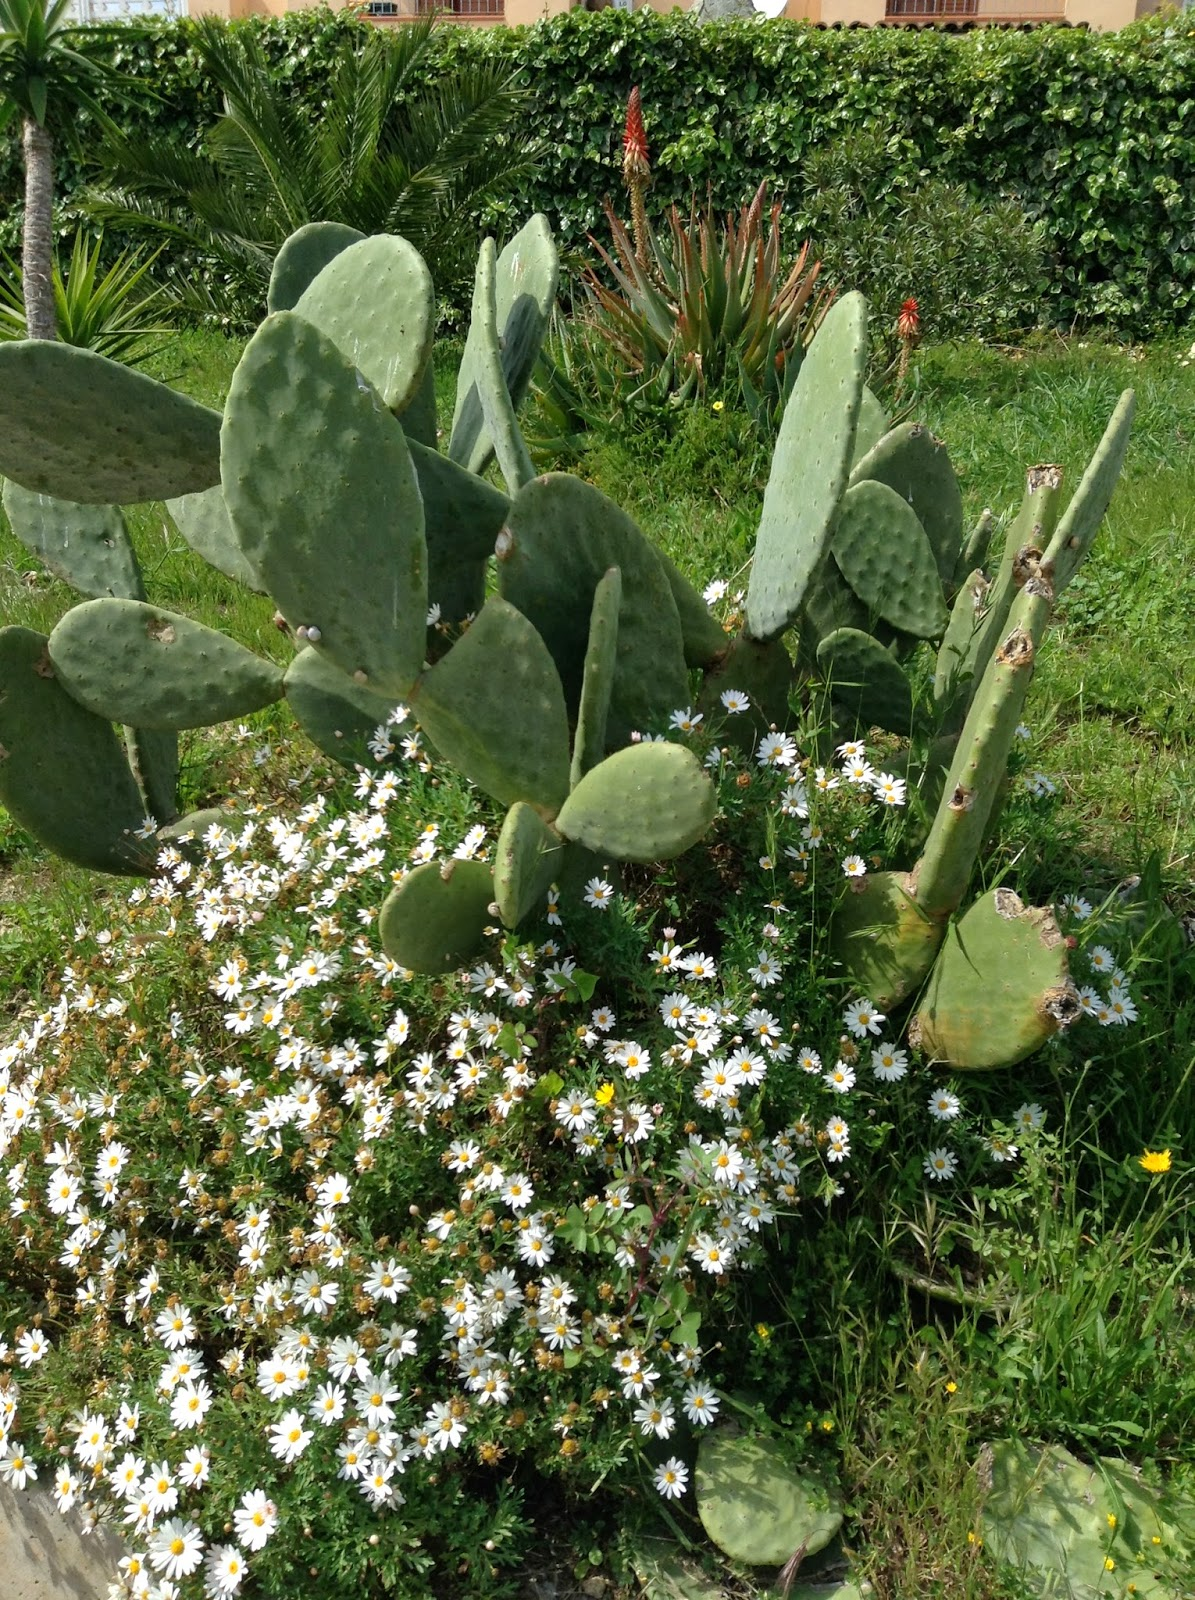 Daisies and Opuntia... a soft & thorny plant combination!